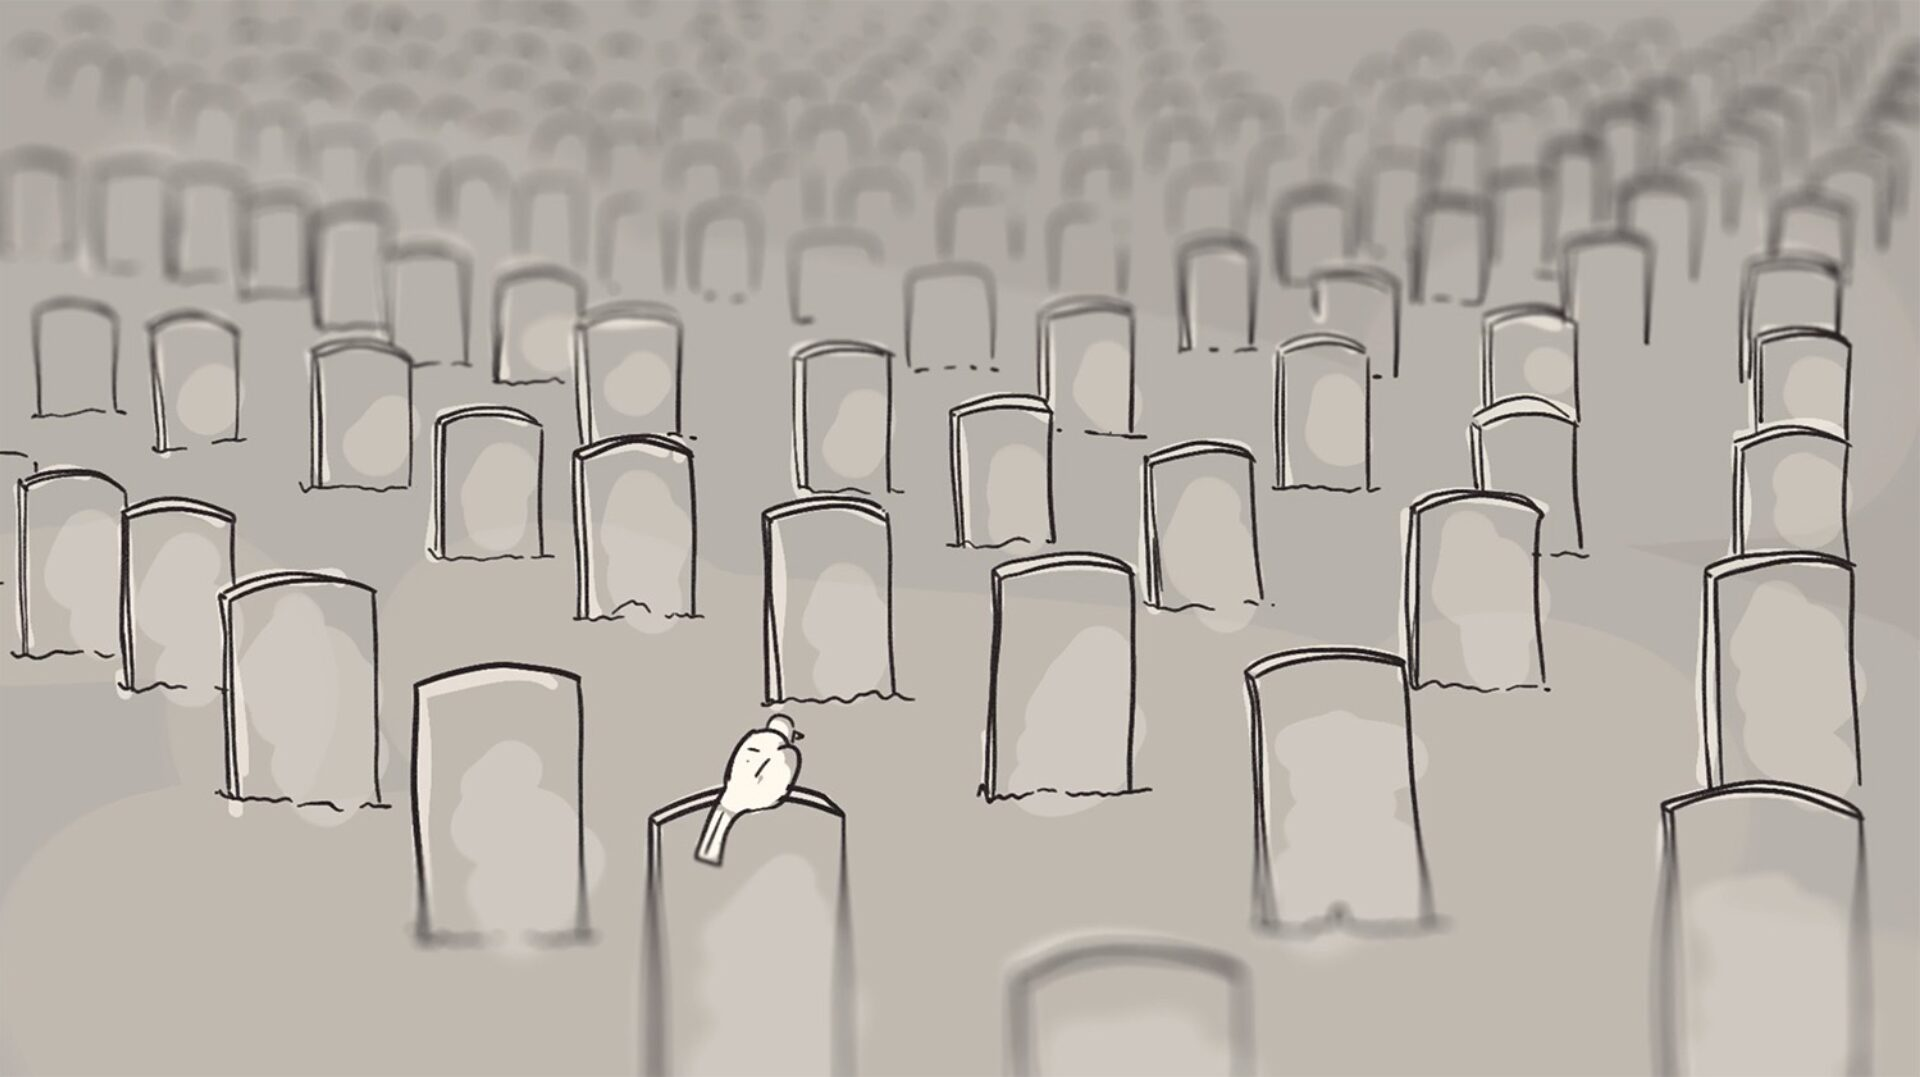 Qpr About Suicide Animatic Cemetery Treatment Creative Work